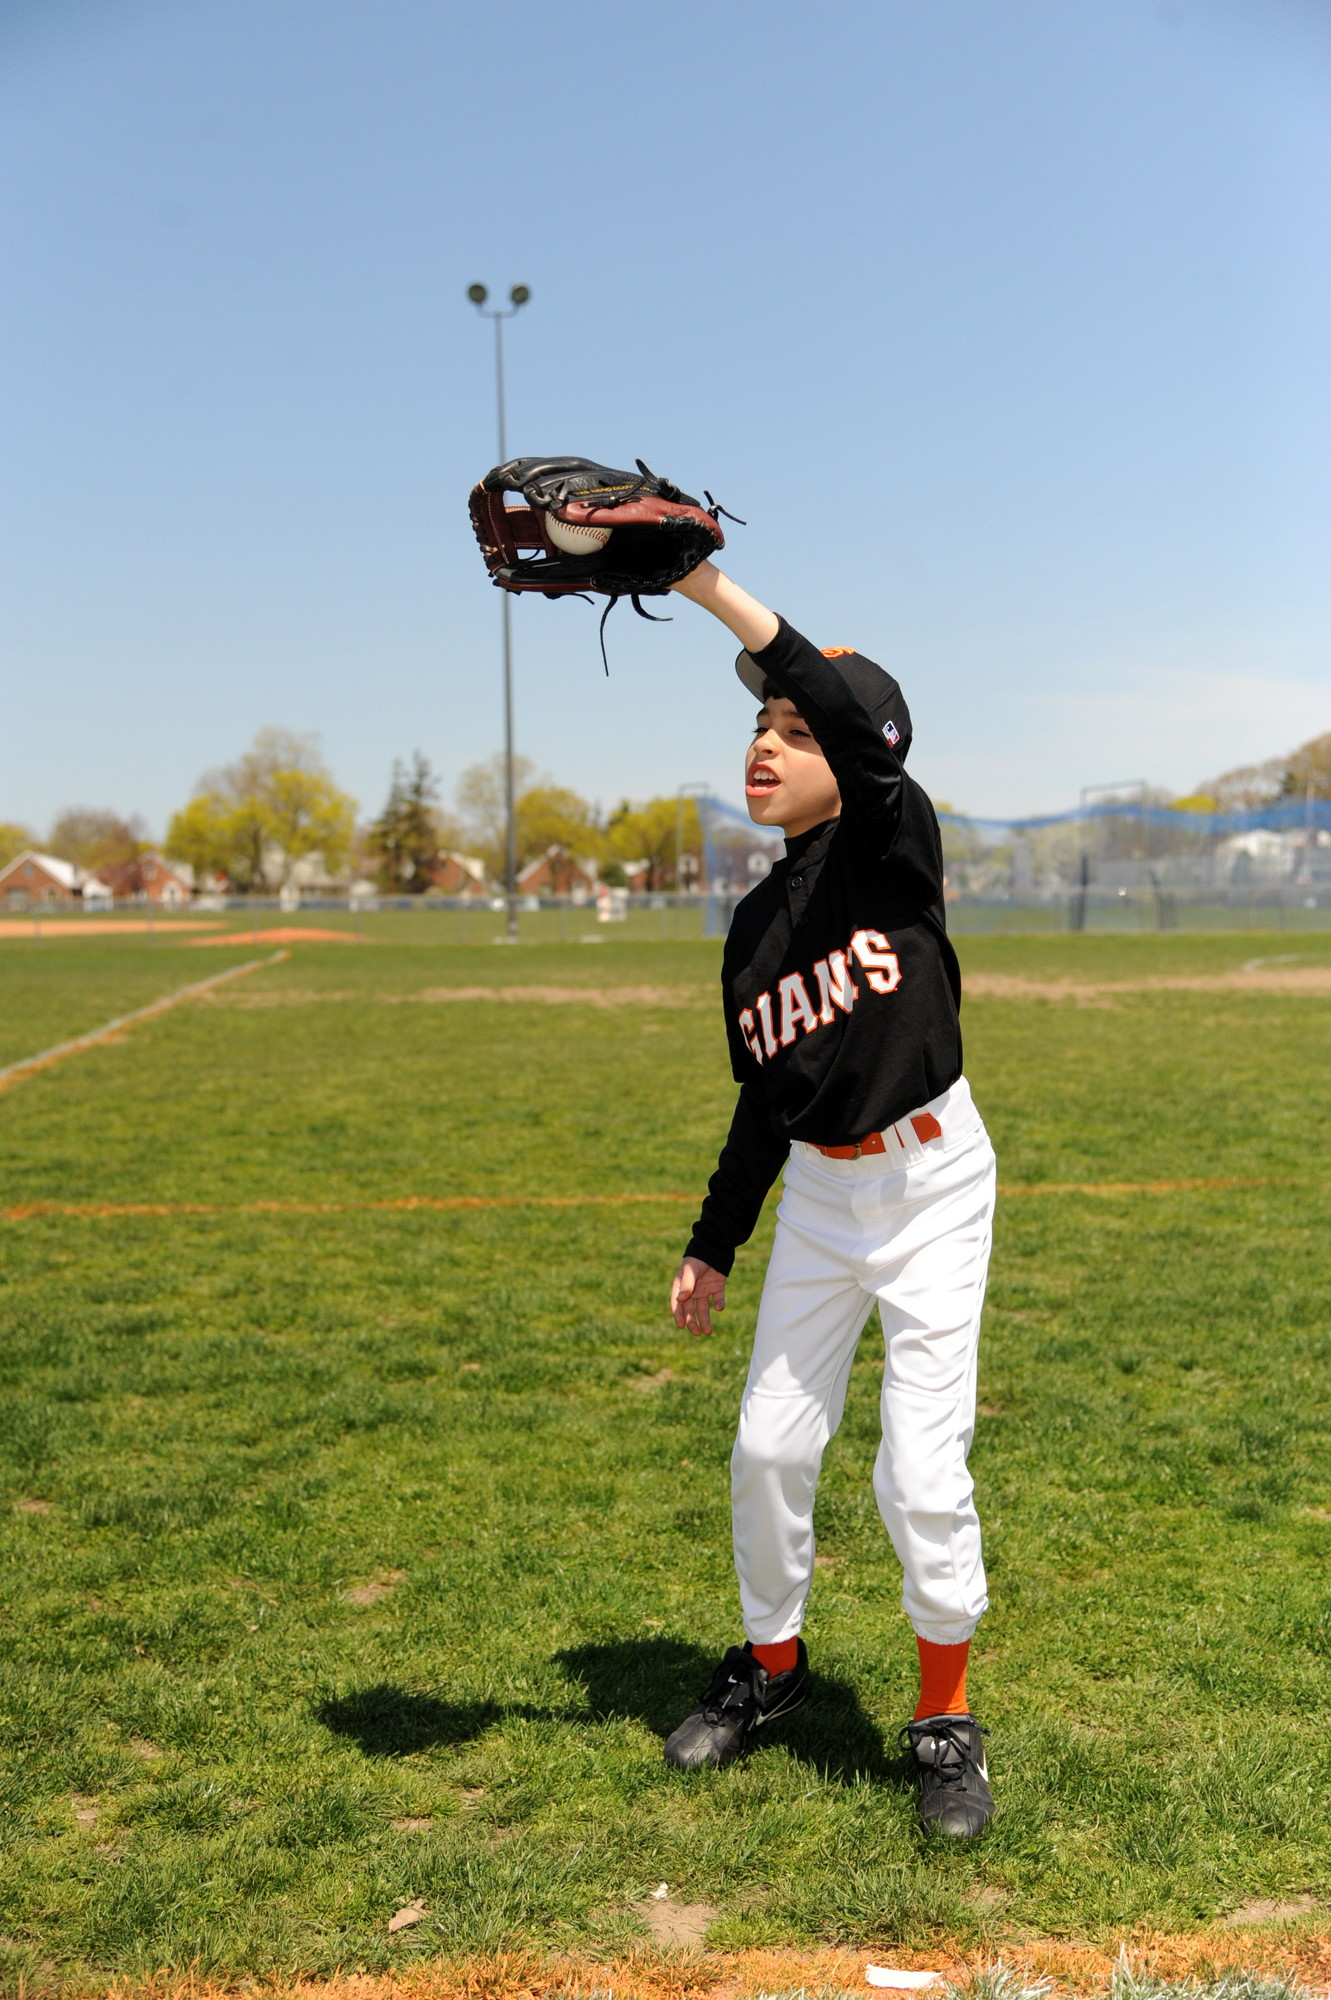 Adrian Quezada, 8, played catch to warm up for his first game of the season.